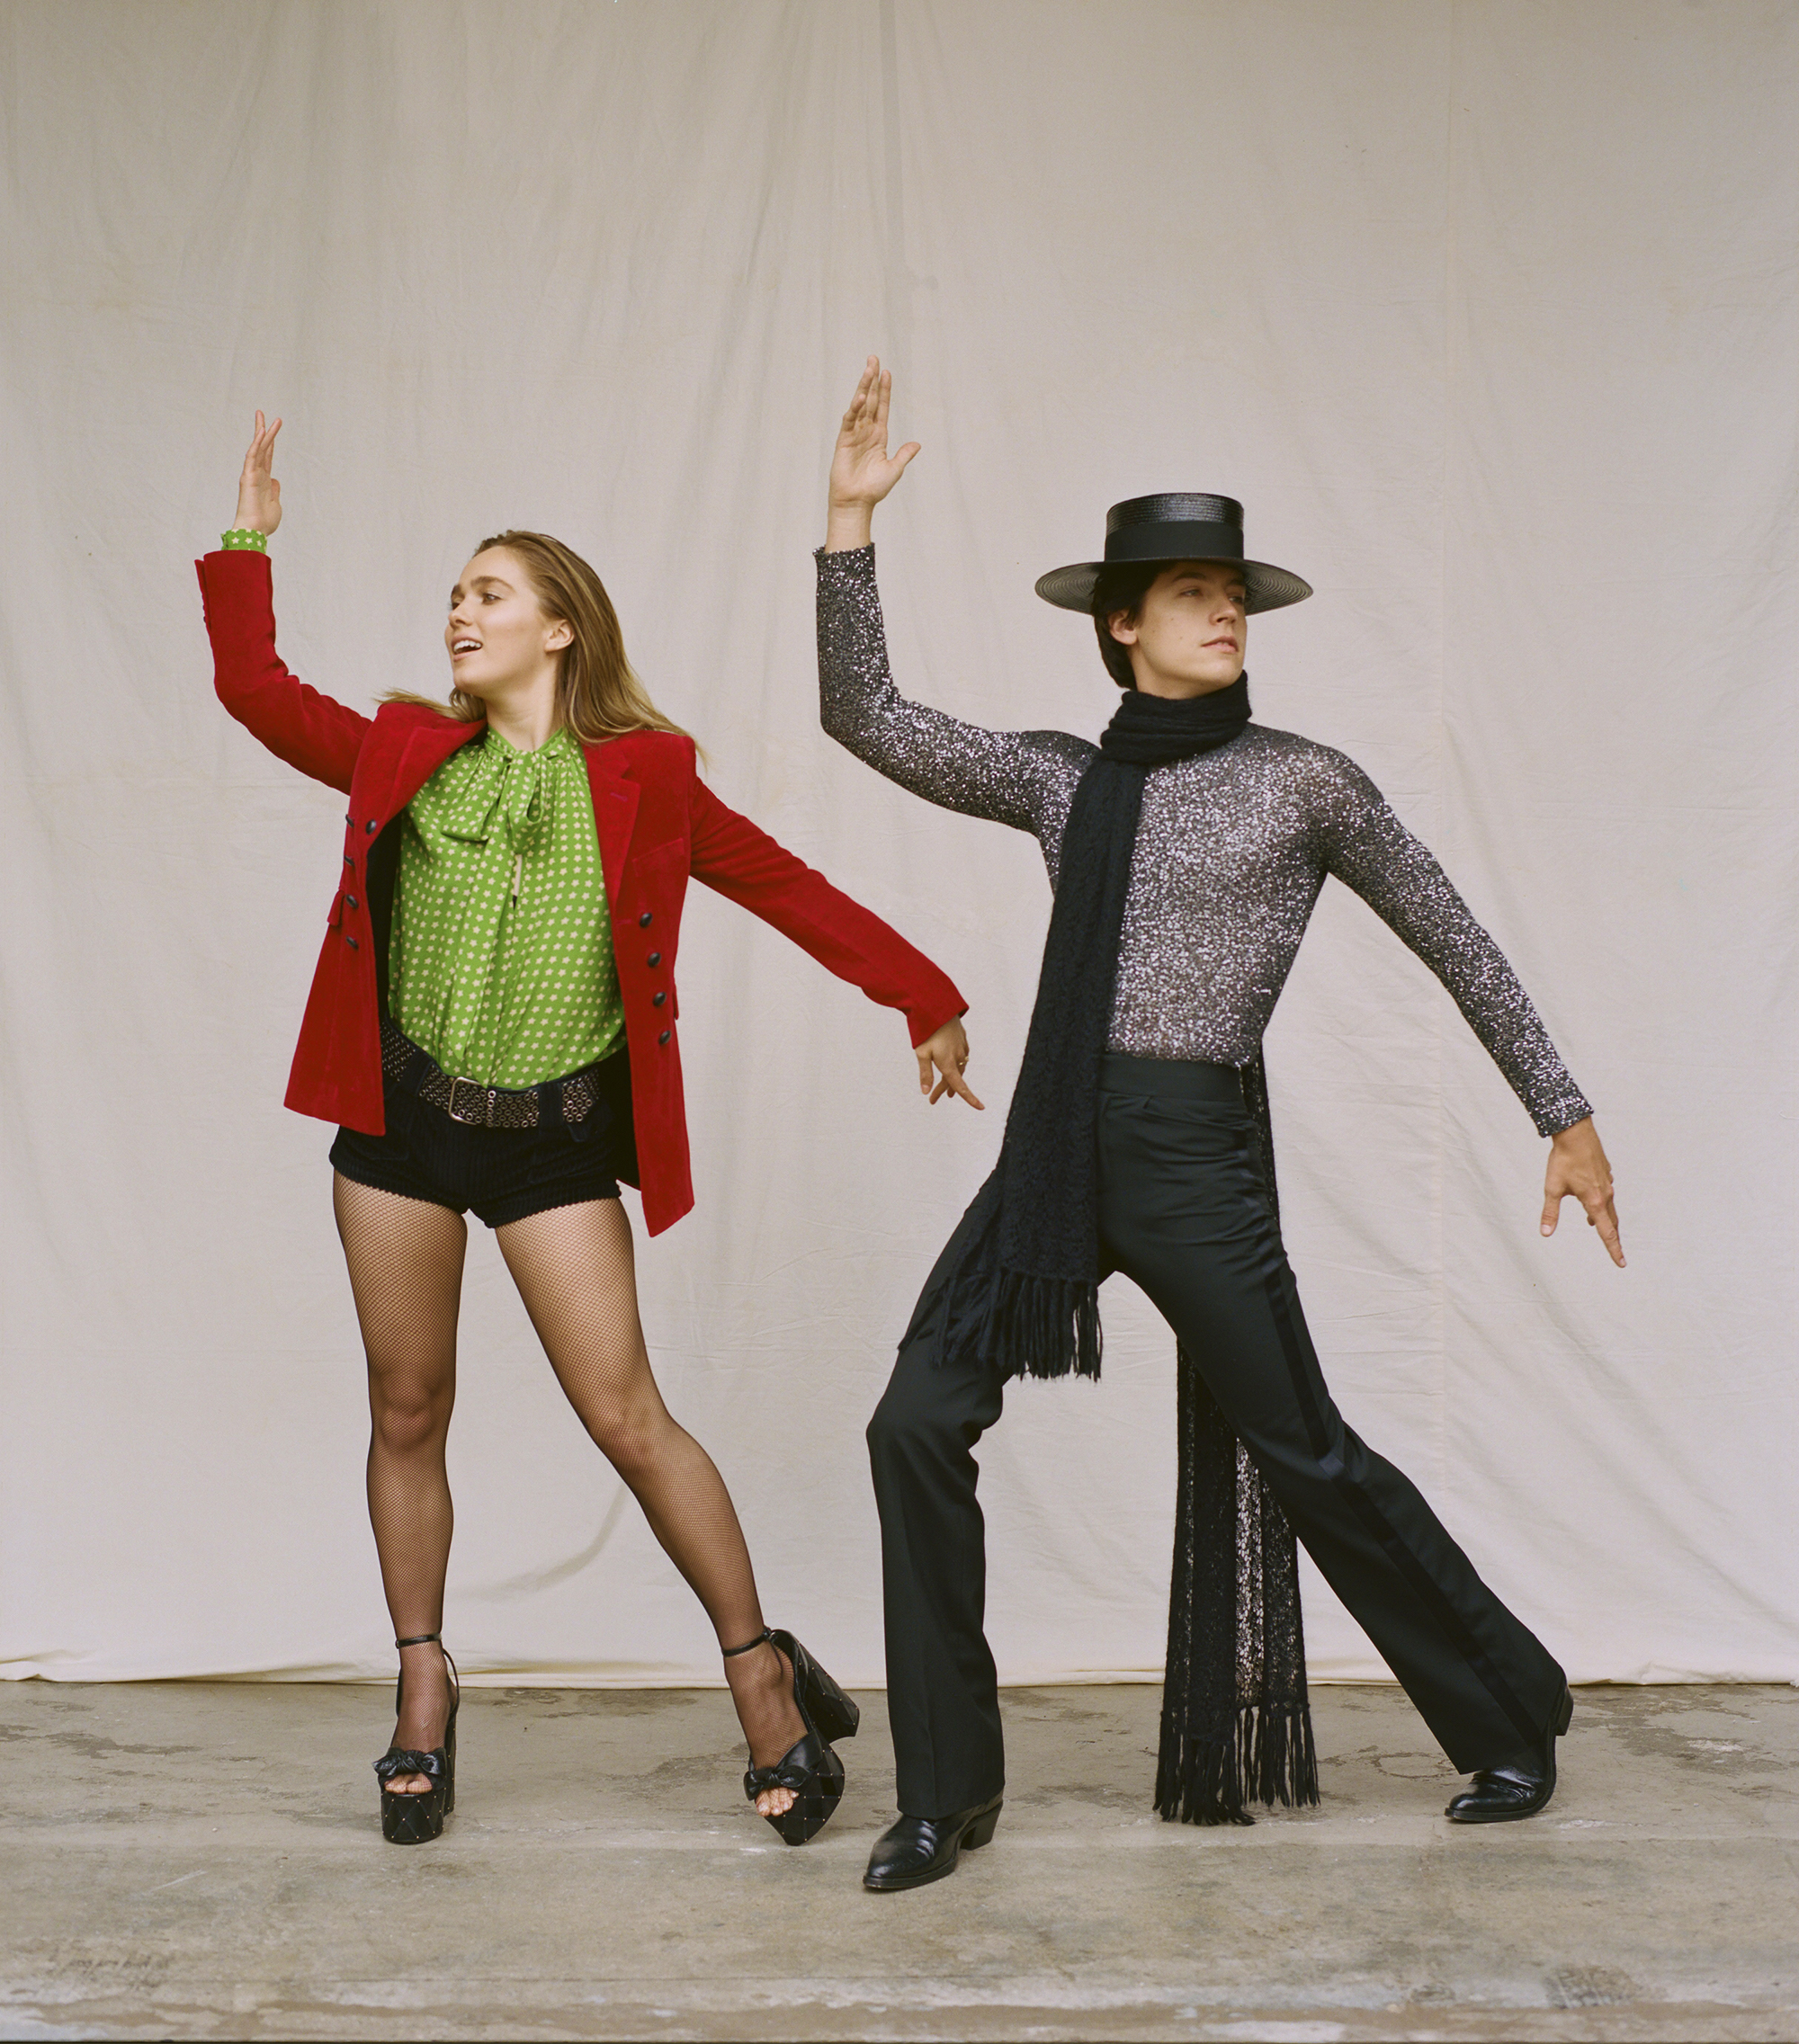 Cole Sprouse and Haley Lu Richardson on the Spring 19 cover of Wonderland in glittery body